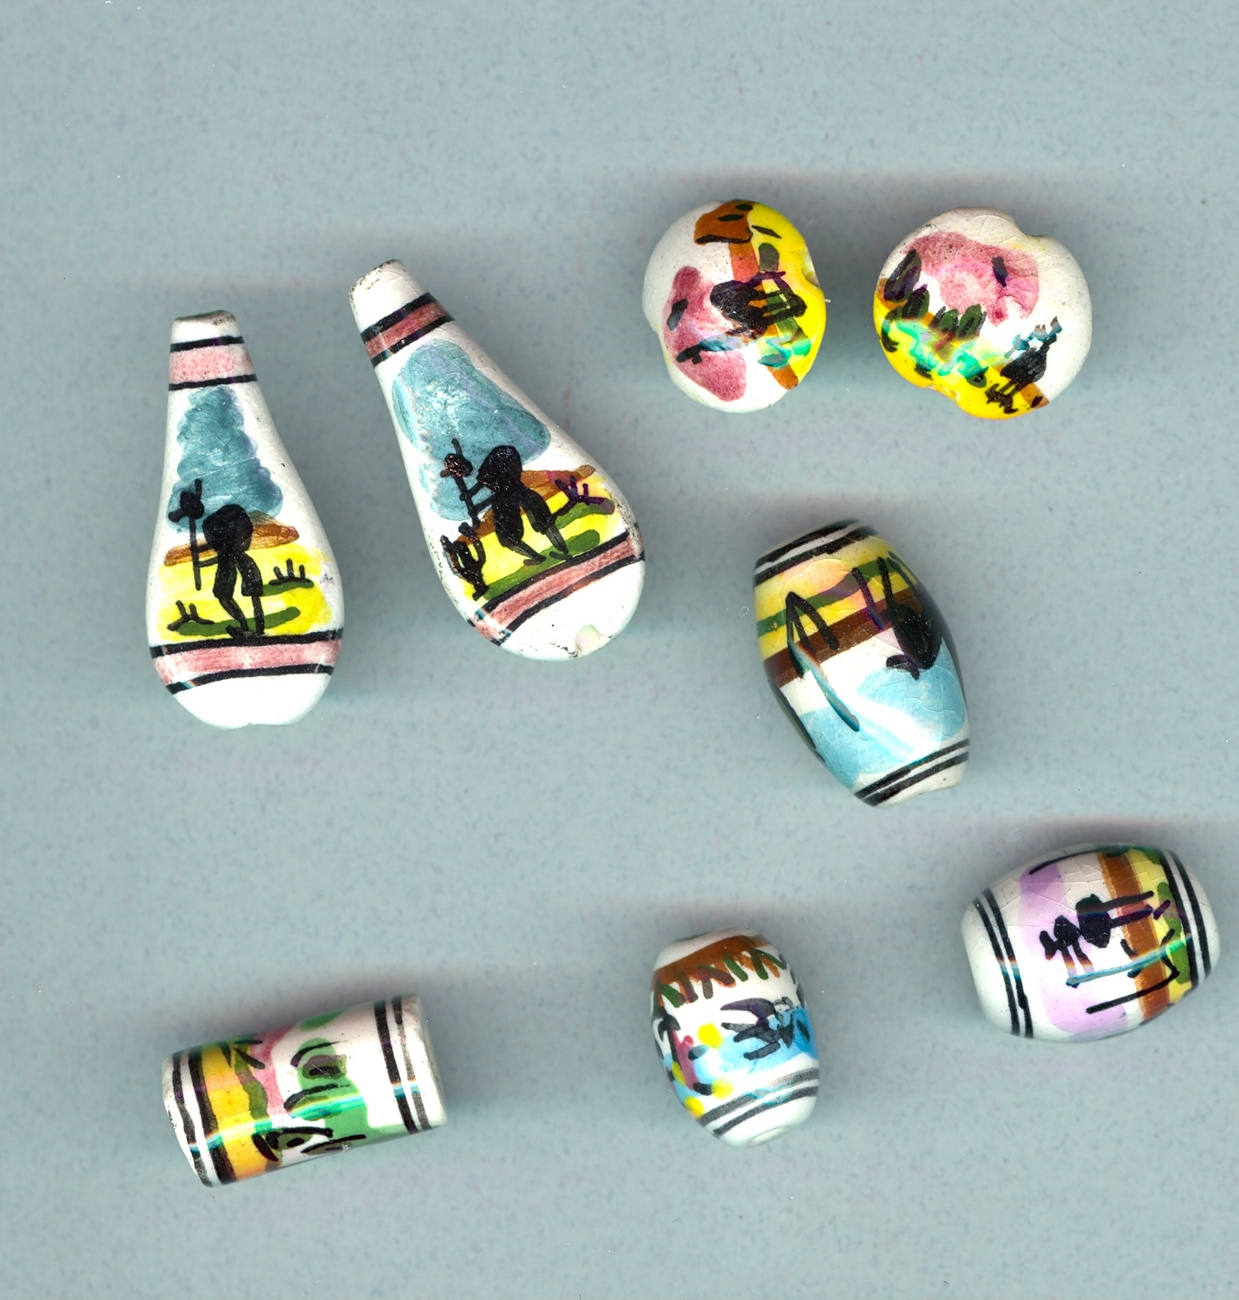 8 pcs. Handpainted Peruvian Beads #9-3Sc13, Free Ship